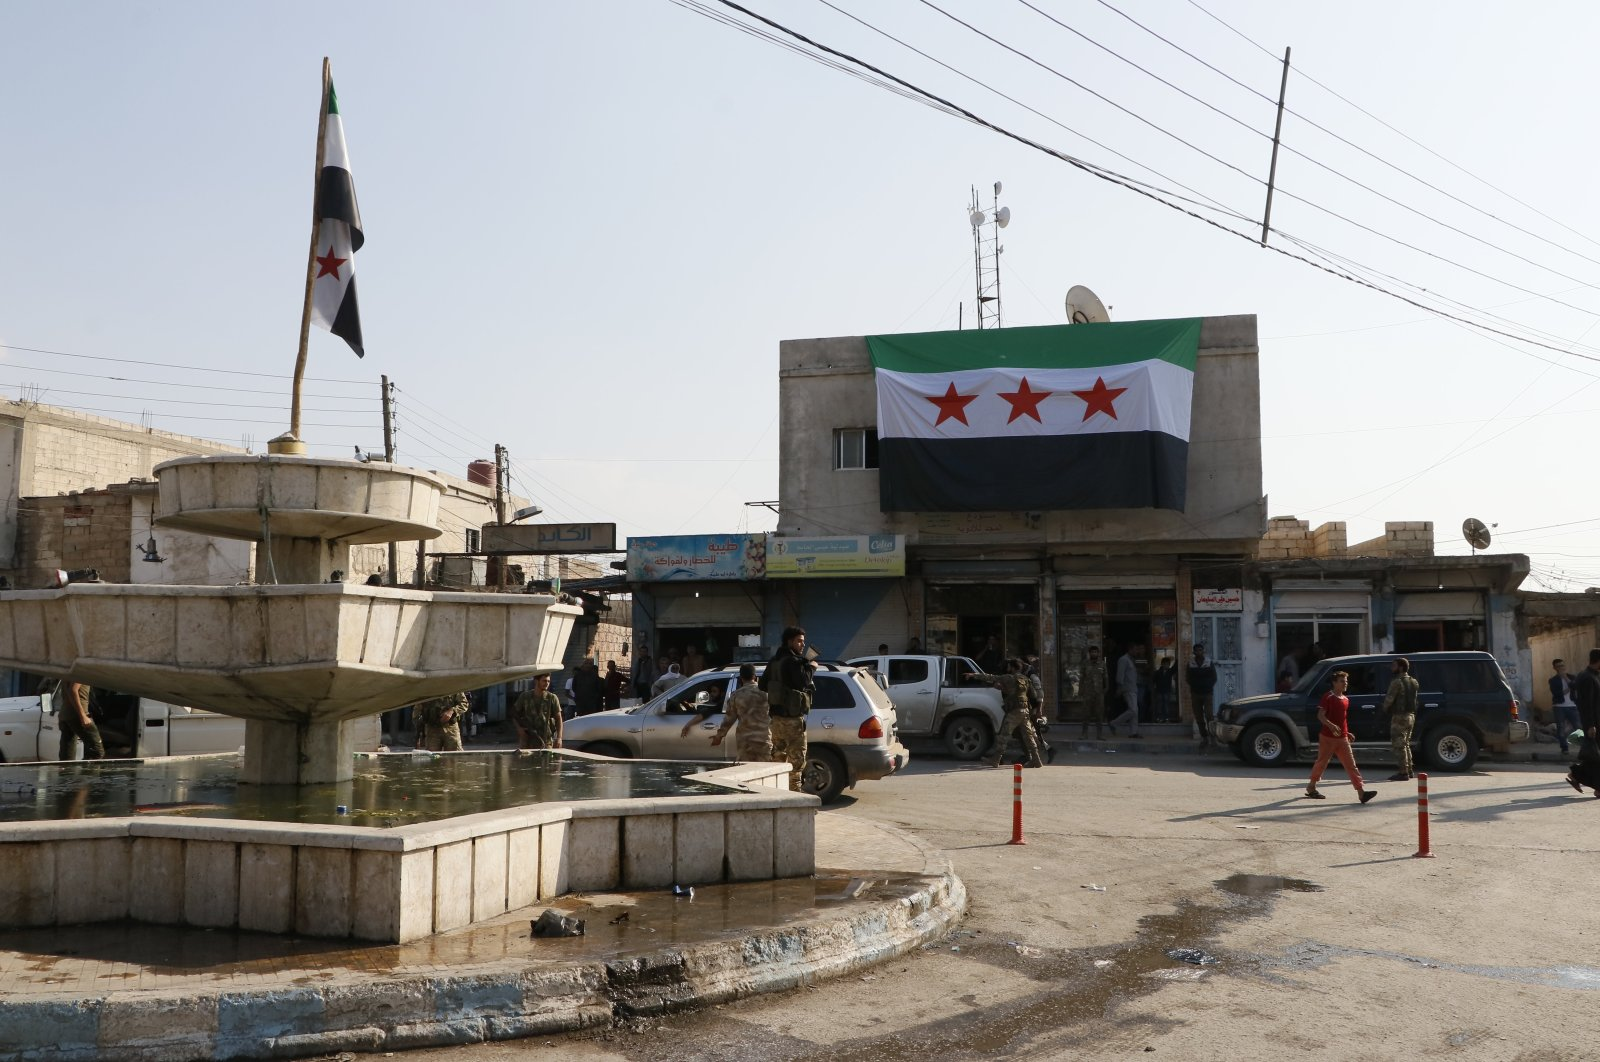 The Syrian National Army (SNA) flag is seen in the town center of Tal Abyad district, Syria, Dec. 31, 2019. (AA File Photo)